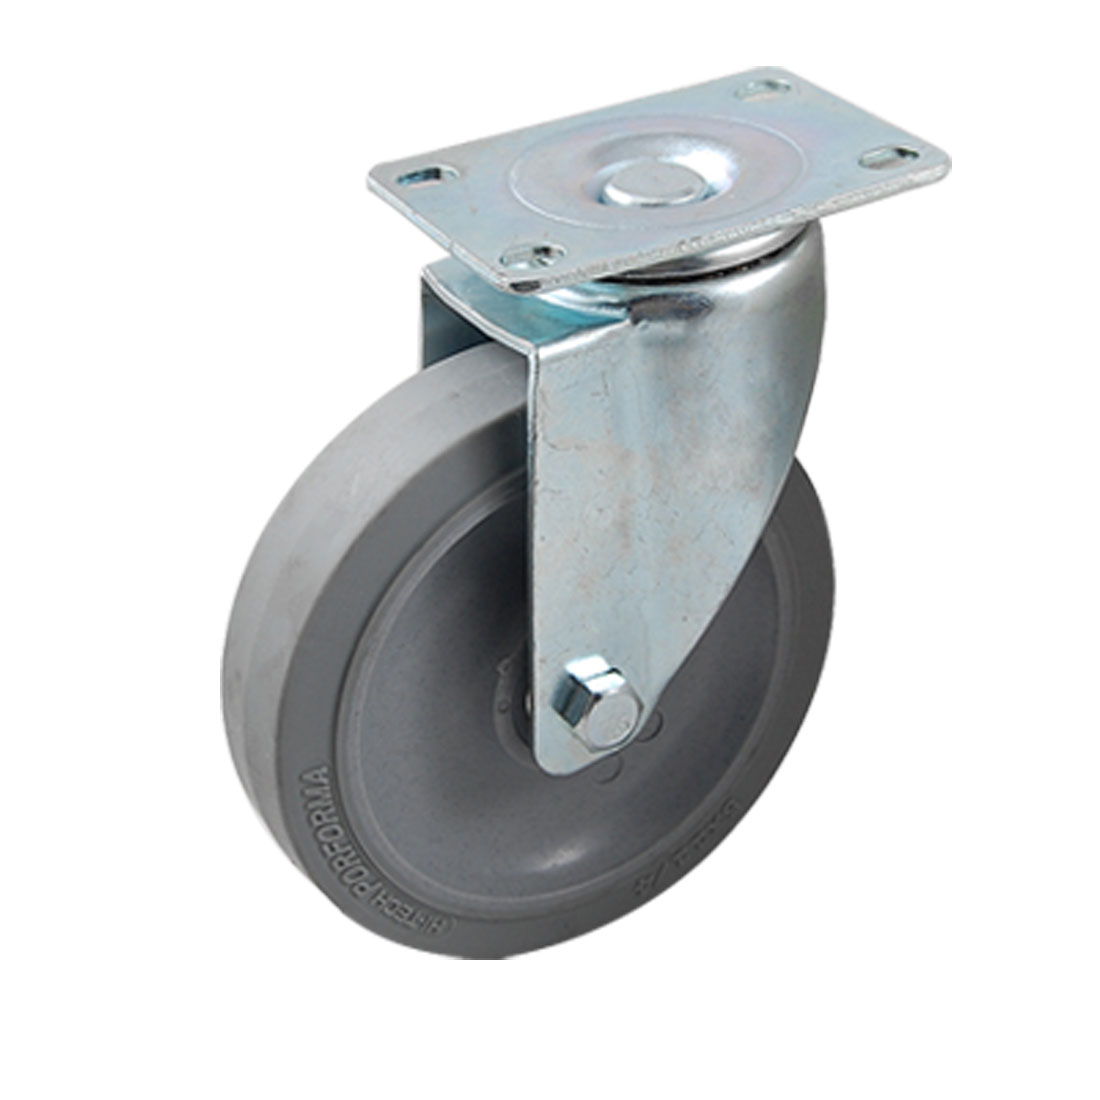 "5"" x 1"" Gray Rubber Wheel Ball Bearing Top Plate Swivel Industrial Caster"